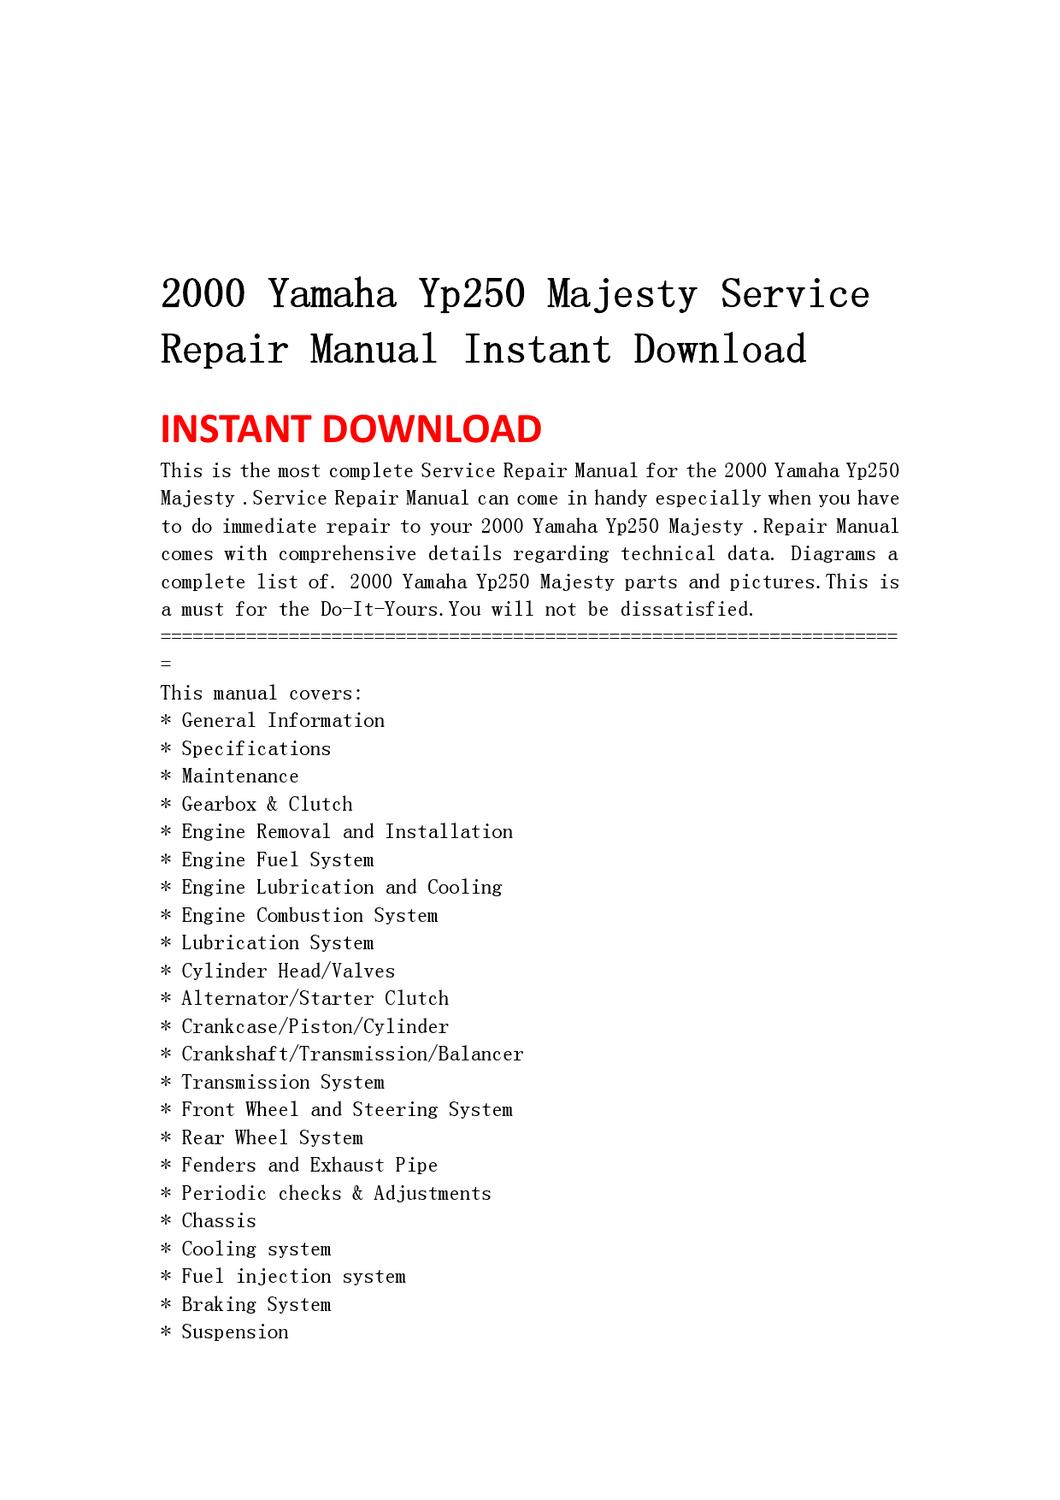 hight resolution of 2000 yamaha yp250 majesty service repair manual instant download by light switch wiring diagram 2000 yamaha